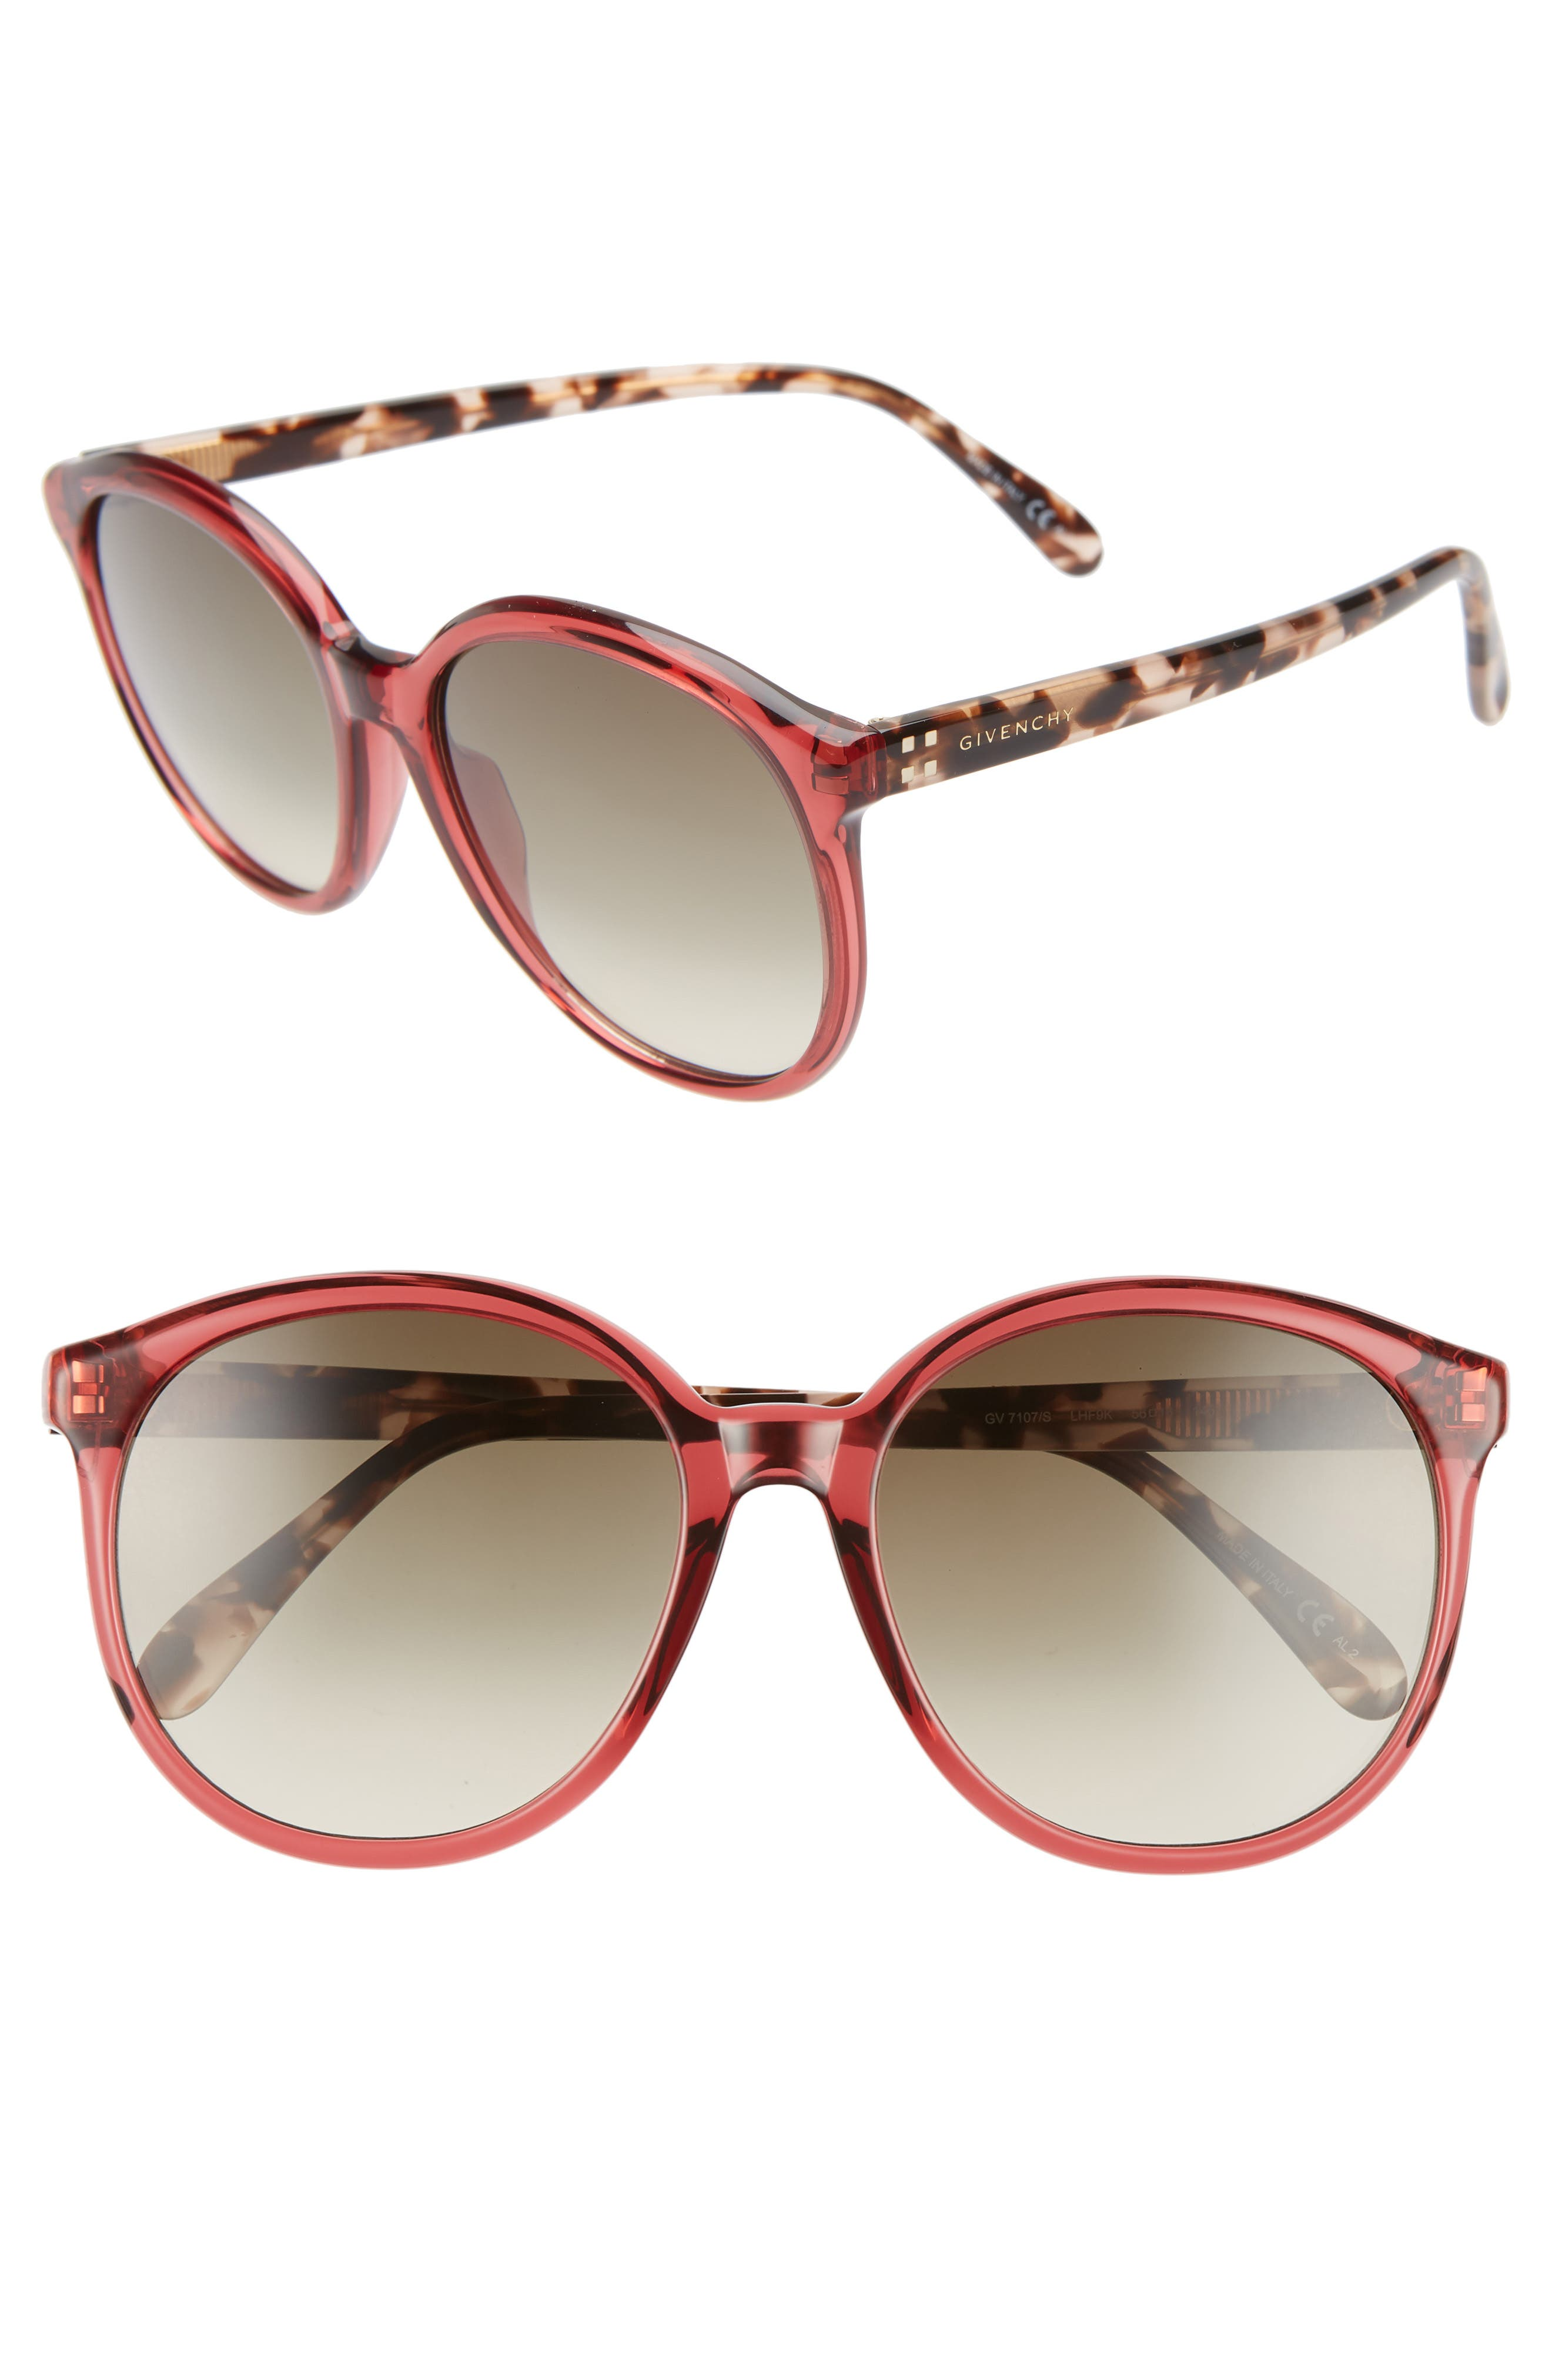 210764fab2f8 Givenchy Sunglasses for Women | Nordstrom